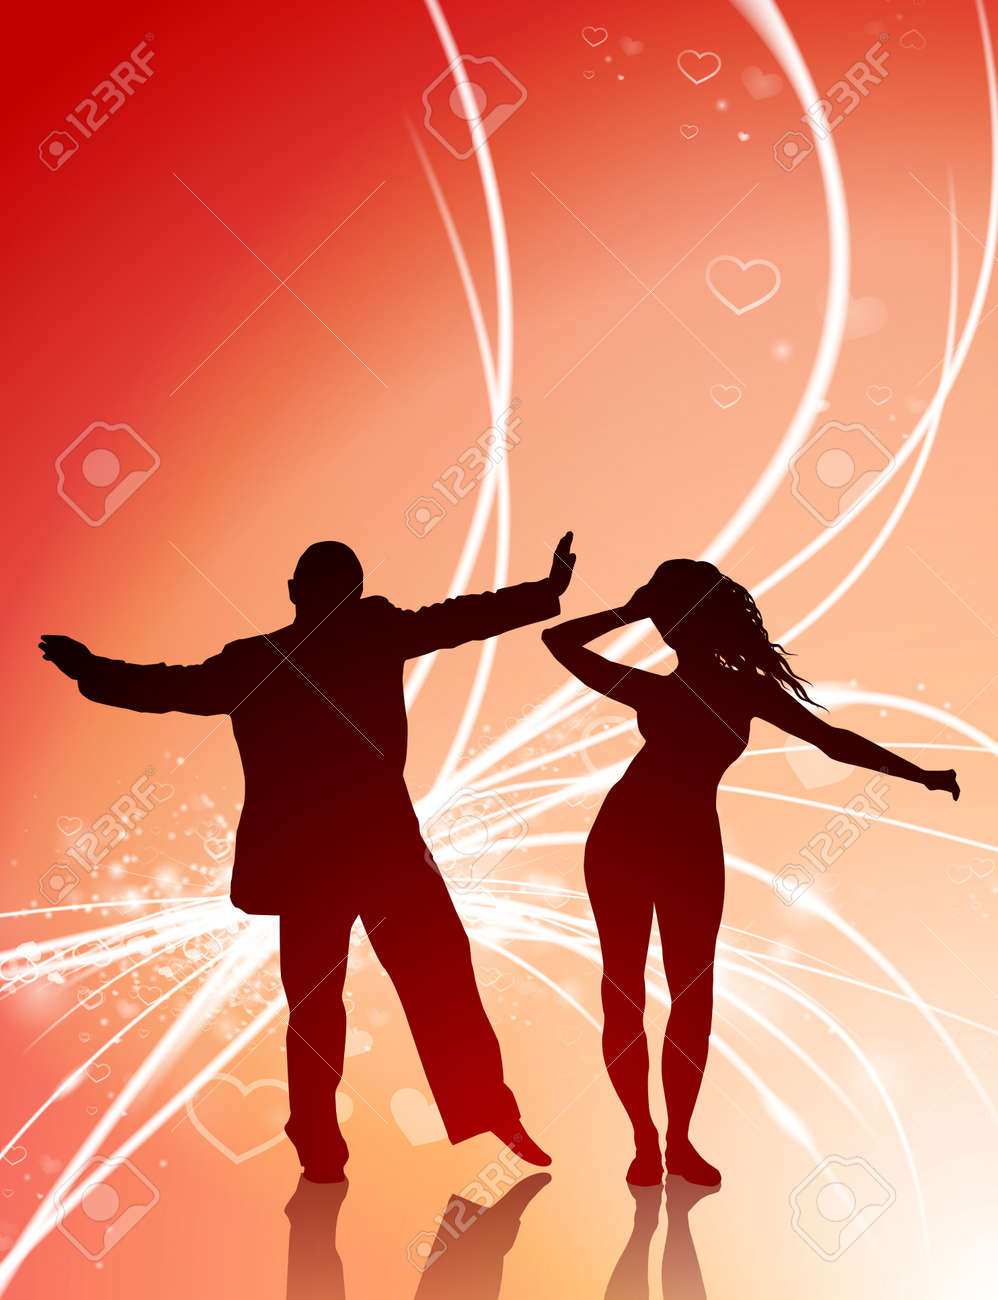 Illustration - Sexy Young Couple on Abstract Valentine's Day Light  Background Original Illustration